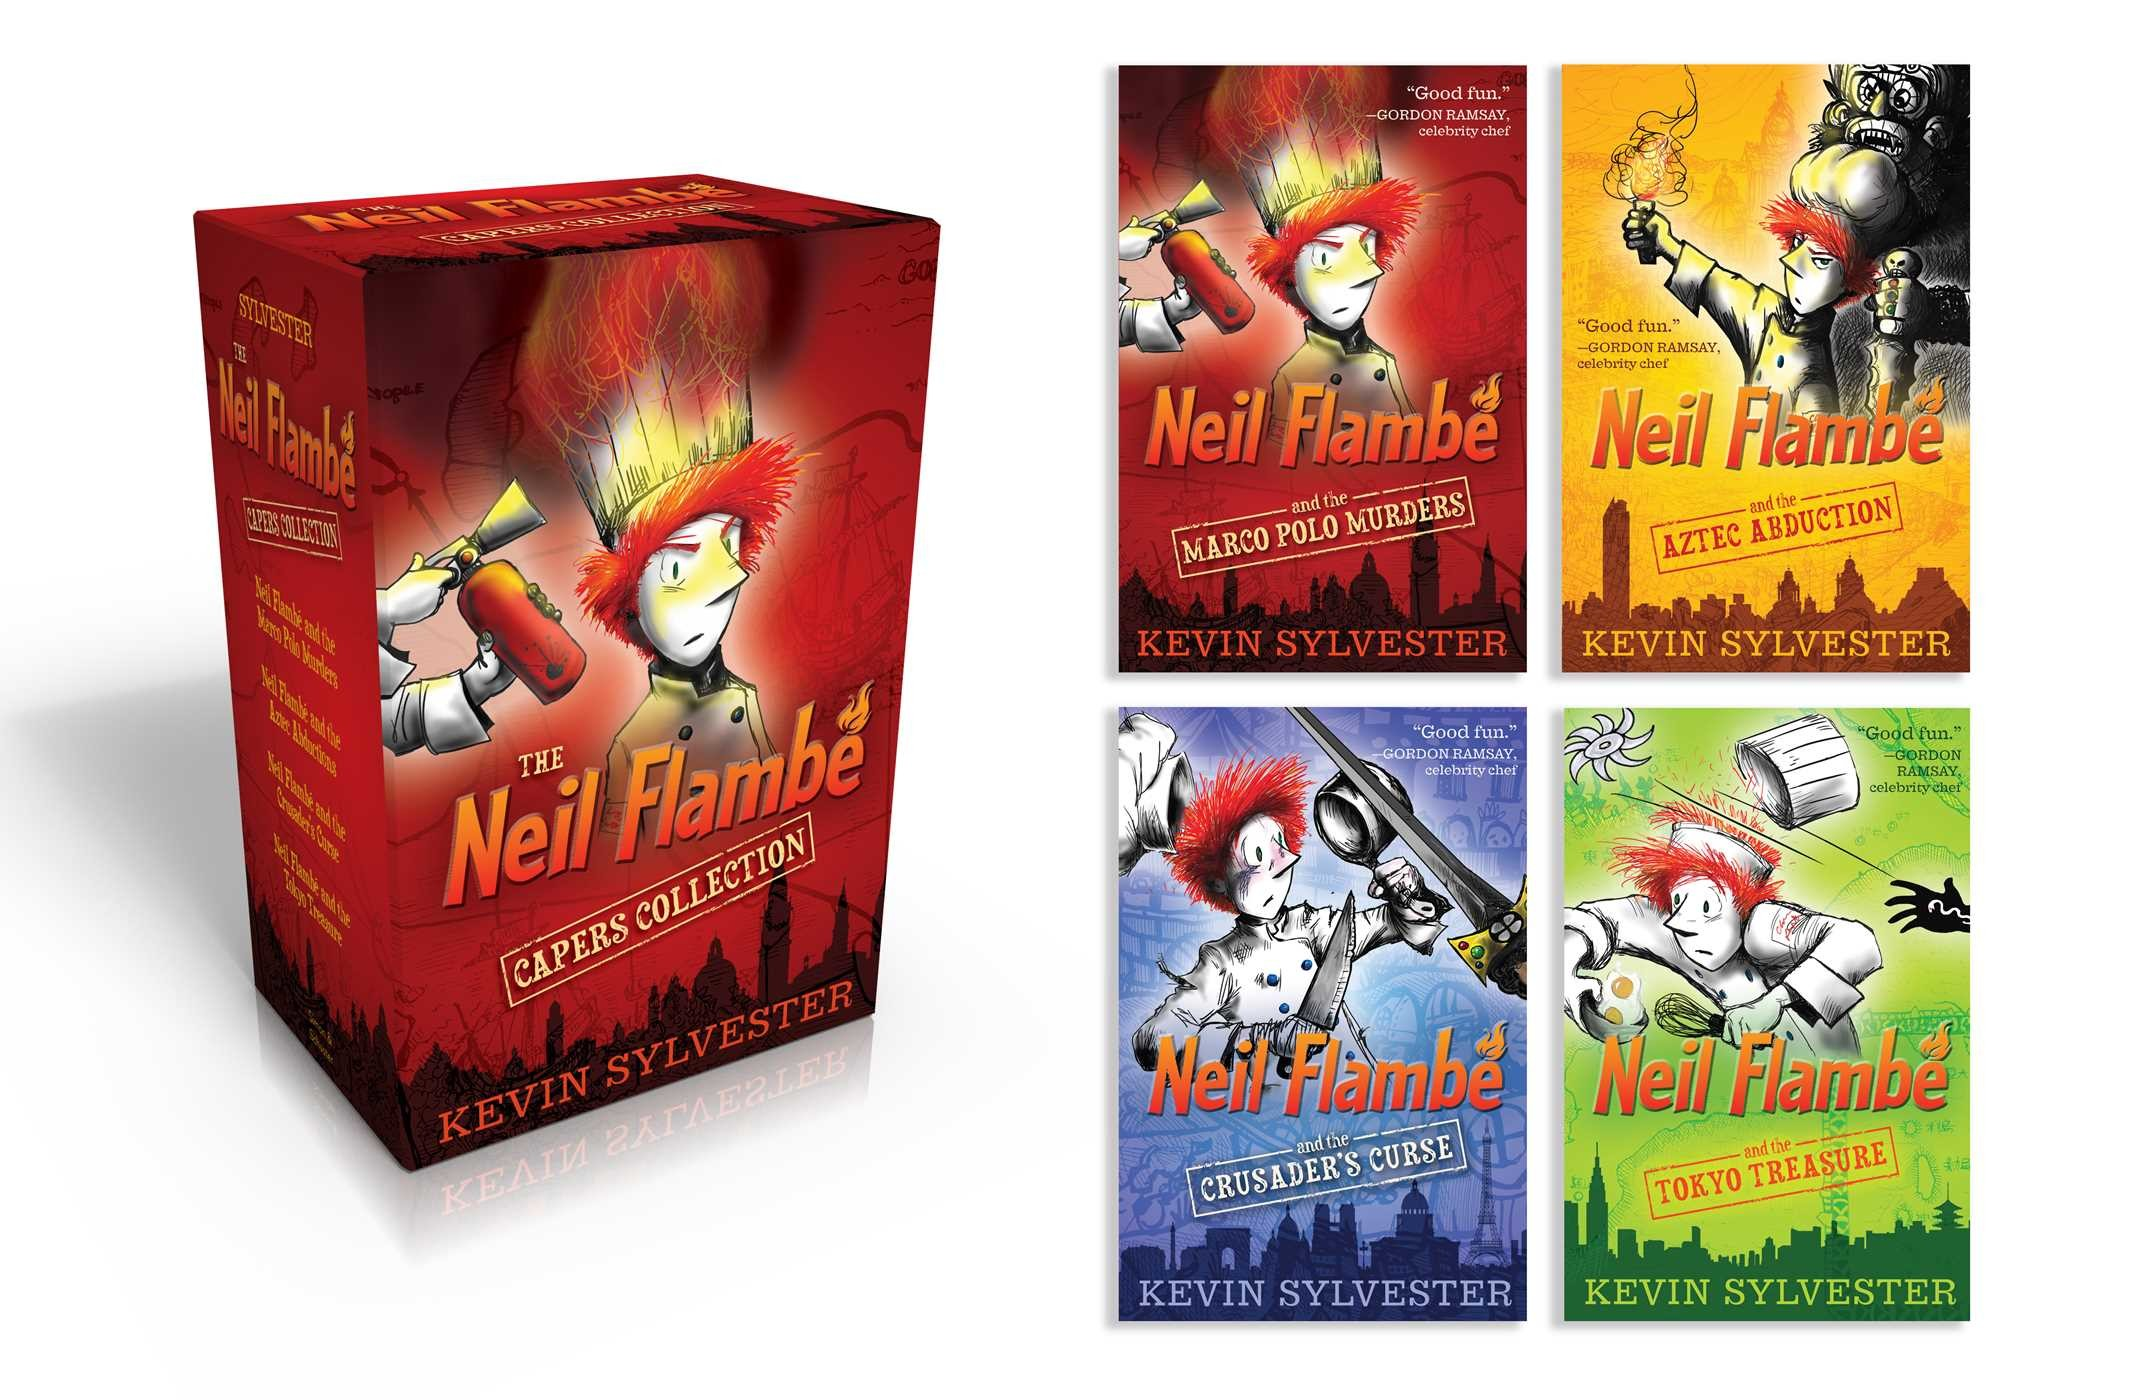 The neil flambe capers collection 9781481432382.in01